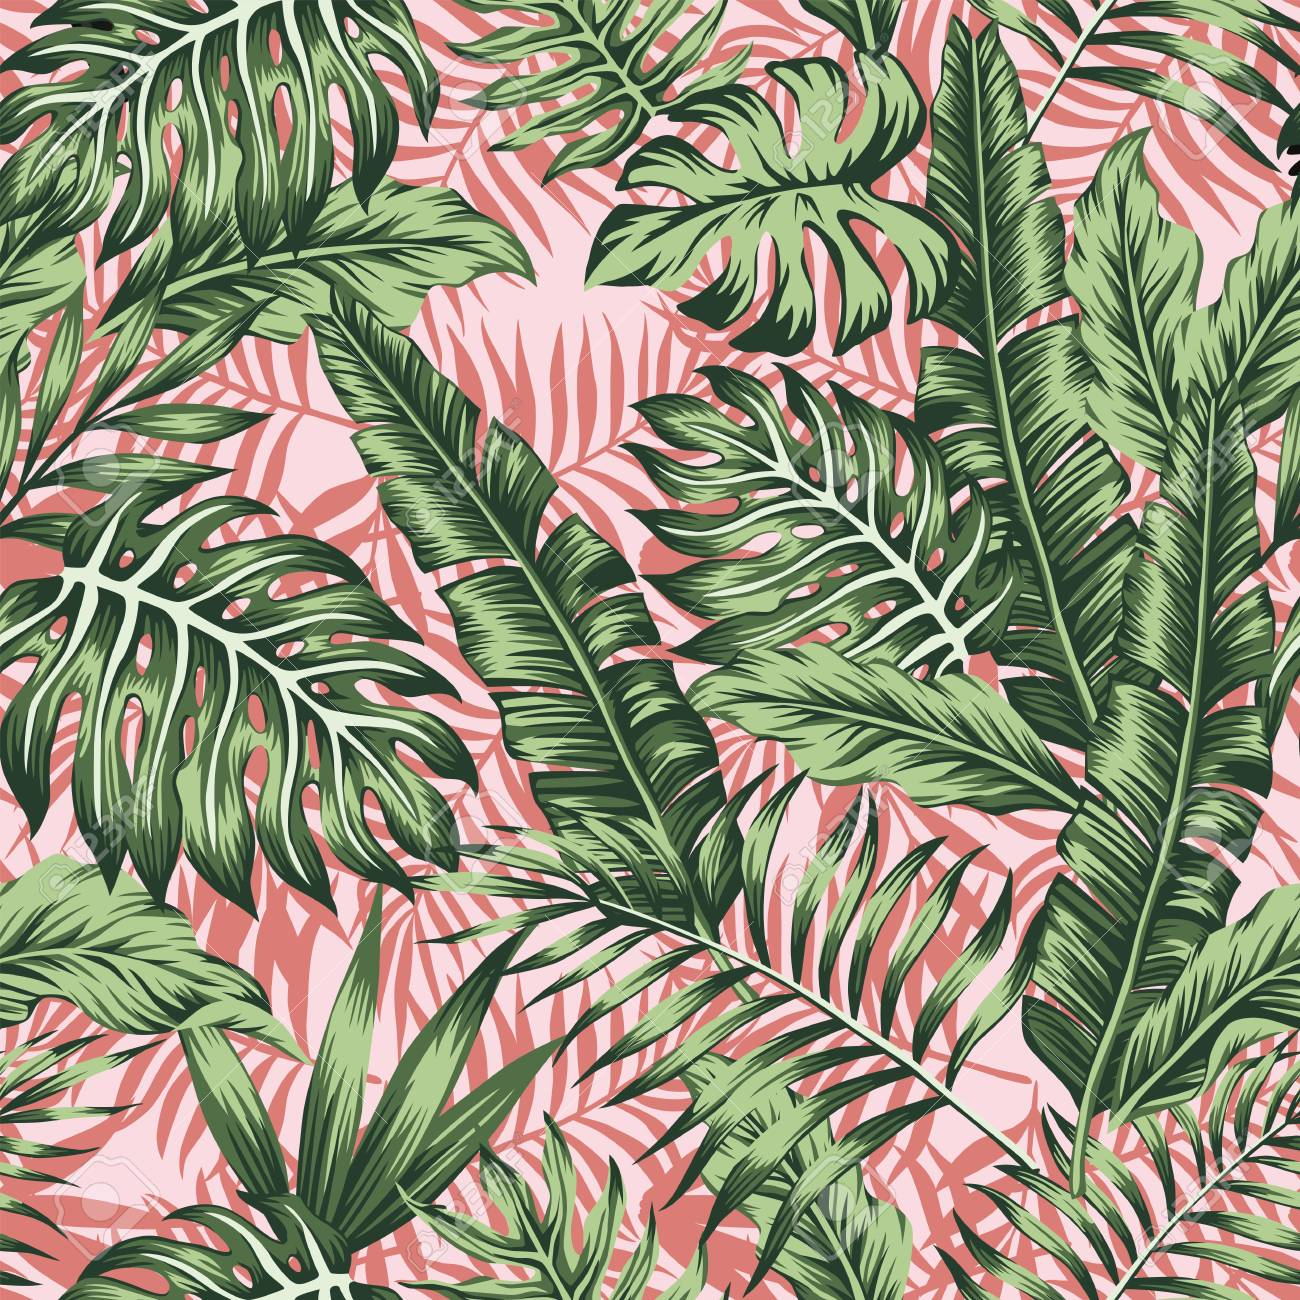 Tropical Green Leaves Jungle Pink Plants Background Royalty Free Cliparts Vectors And Stock Illustration Image 99995217 Download transparent tropical leaves png for free on pngkey.com. tropical green leaves jungle pink plants background